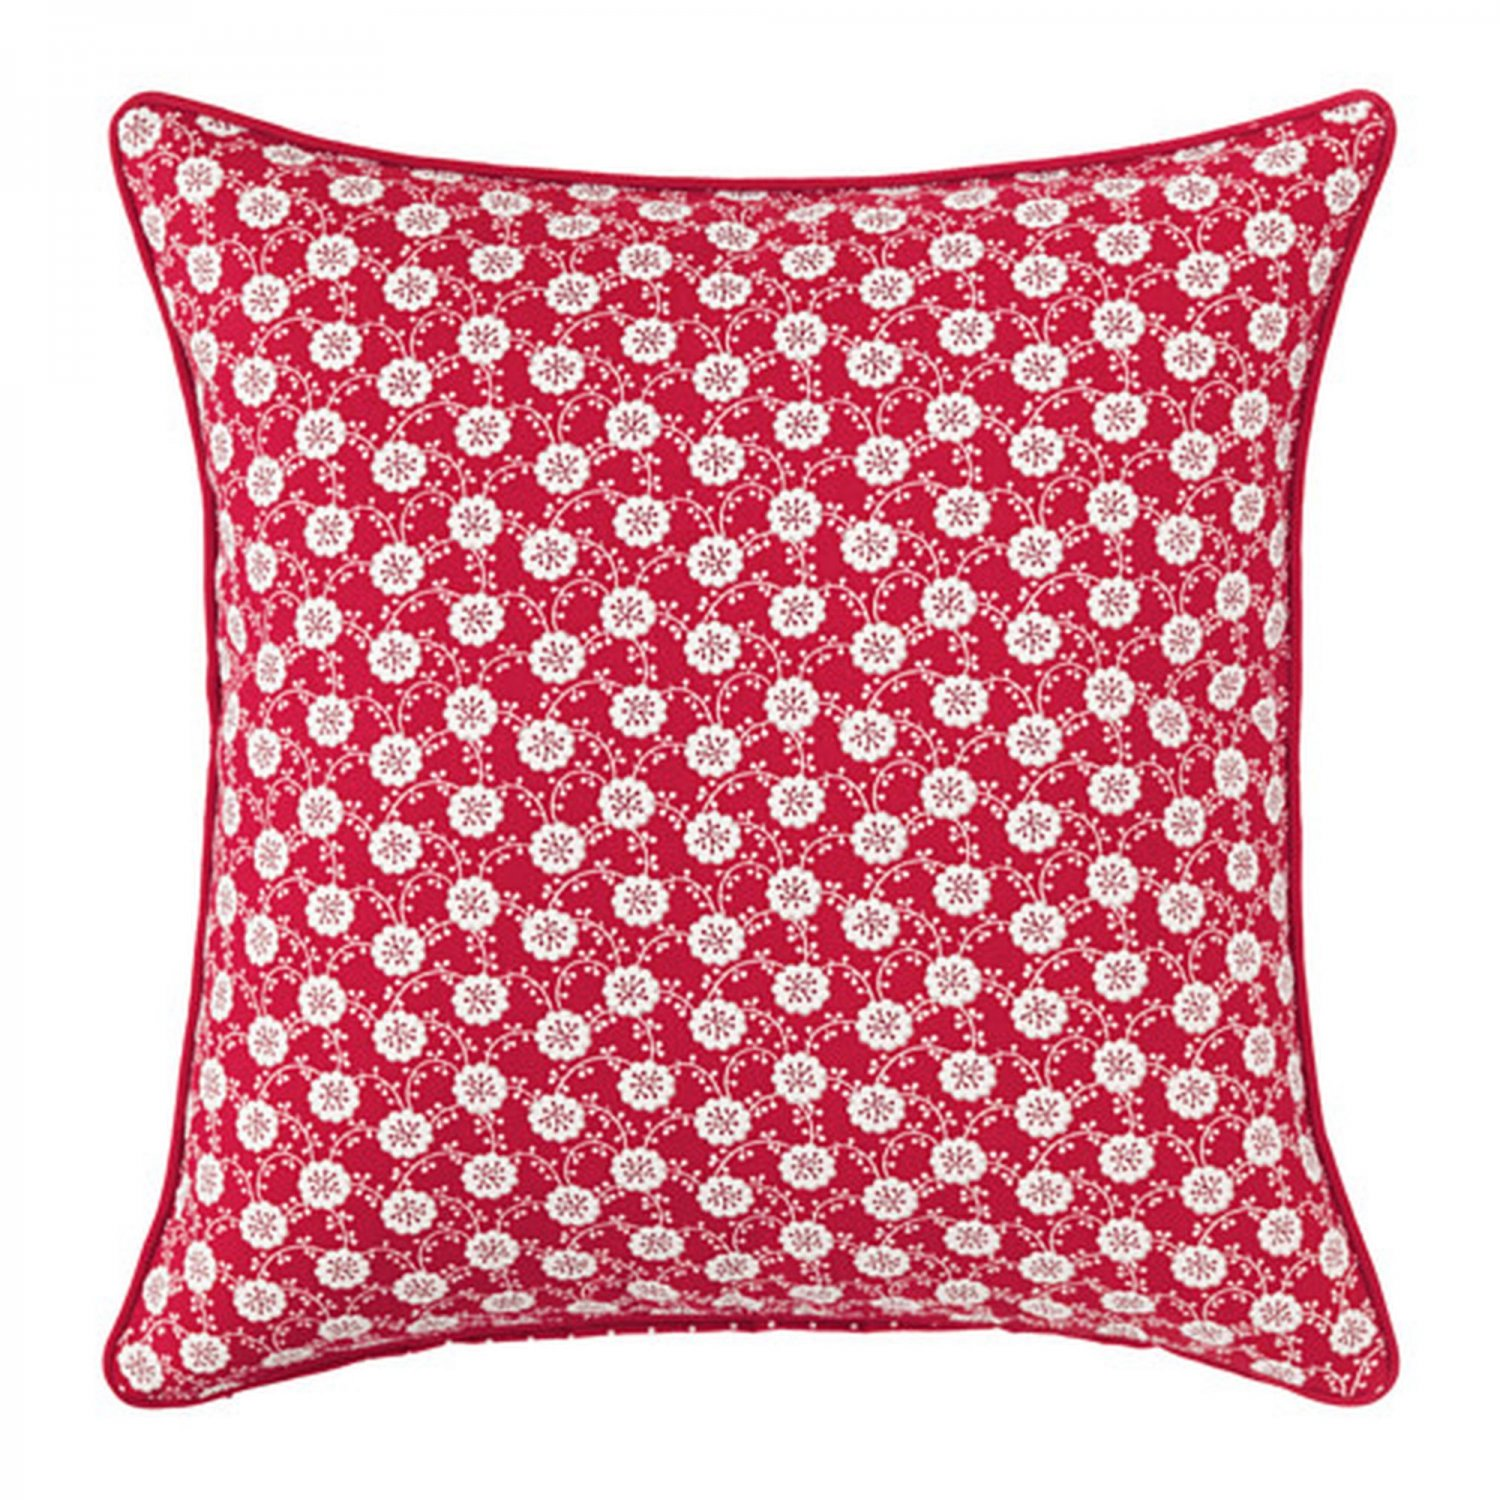 IKEA Lovkoja PILLOW SHAM Cushion Cover RED White Floral L�VKOJA Polka Dots Xmas